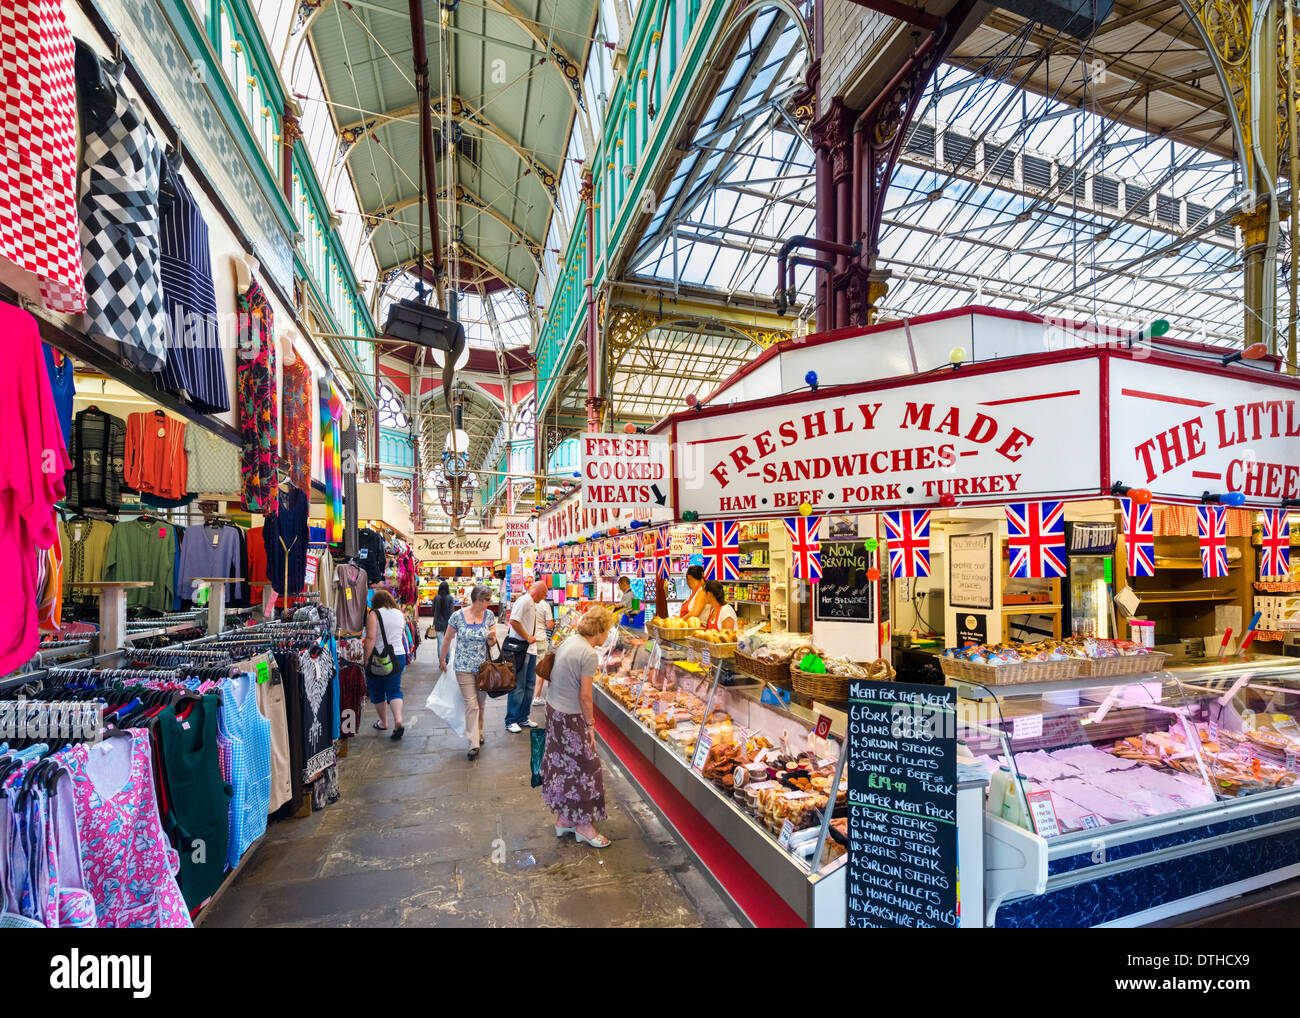 Halifax Borough Market in the city centre, Halifax, West Yorkshire, England, UK - Stock Image